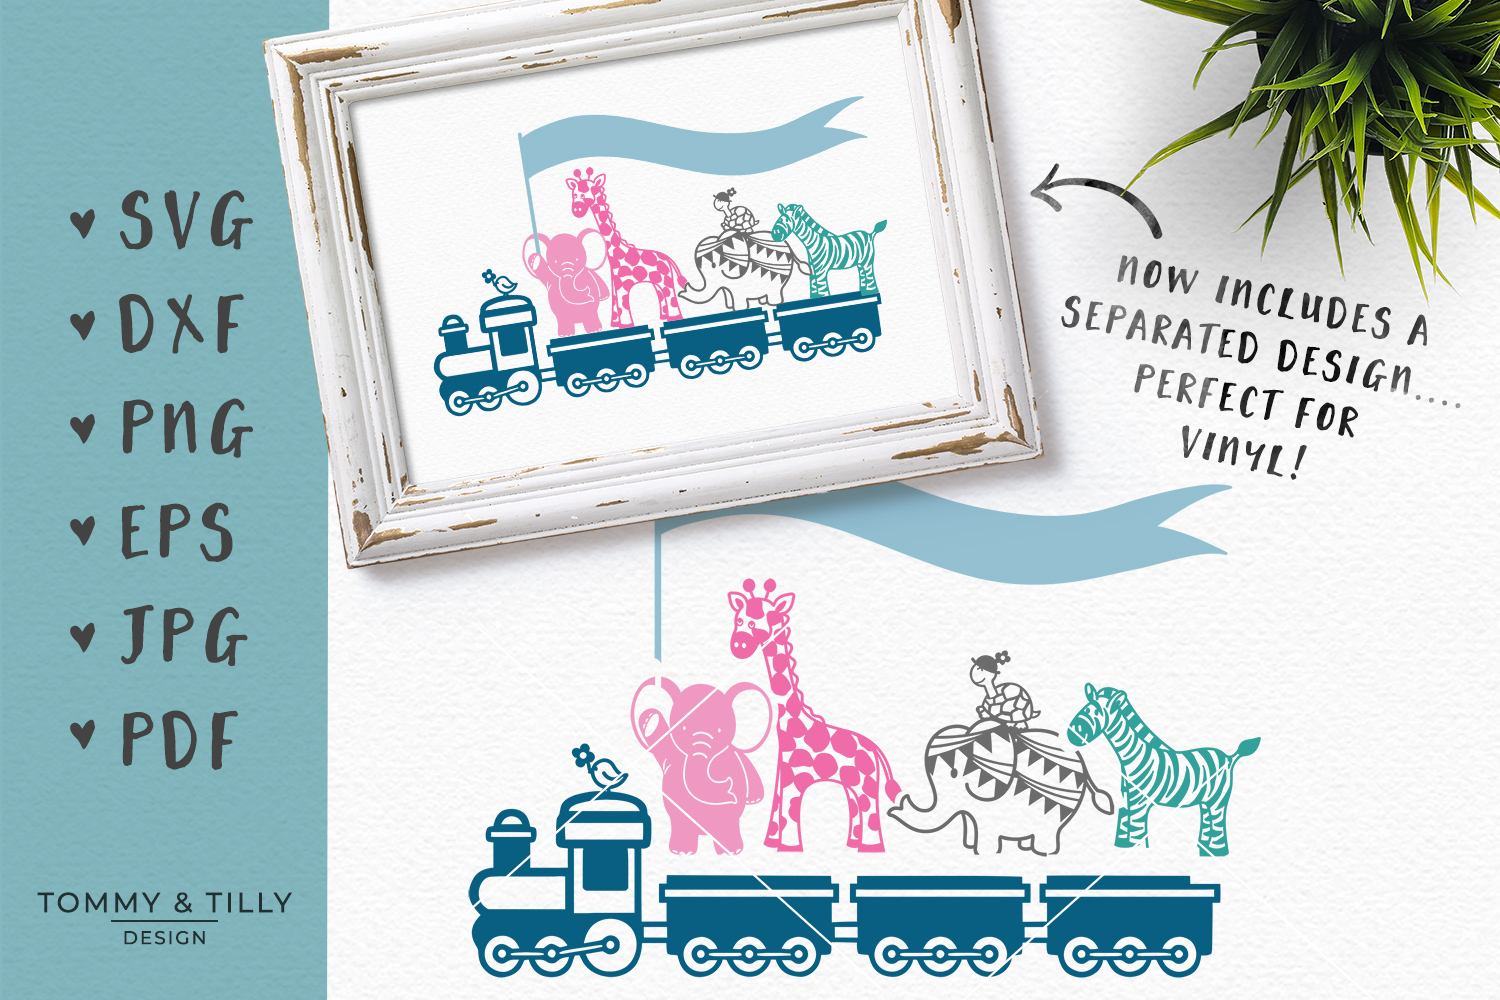 Animal Train - SVG DXF PNG EPS JPG PDF Cutting File example image 2